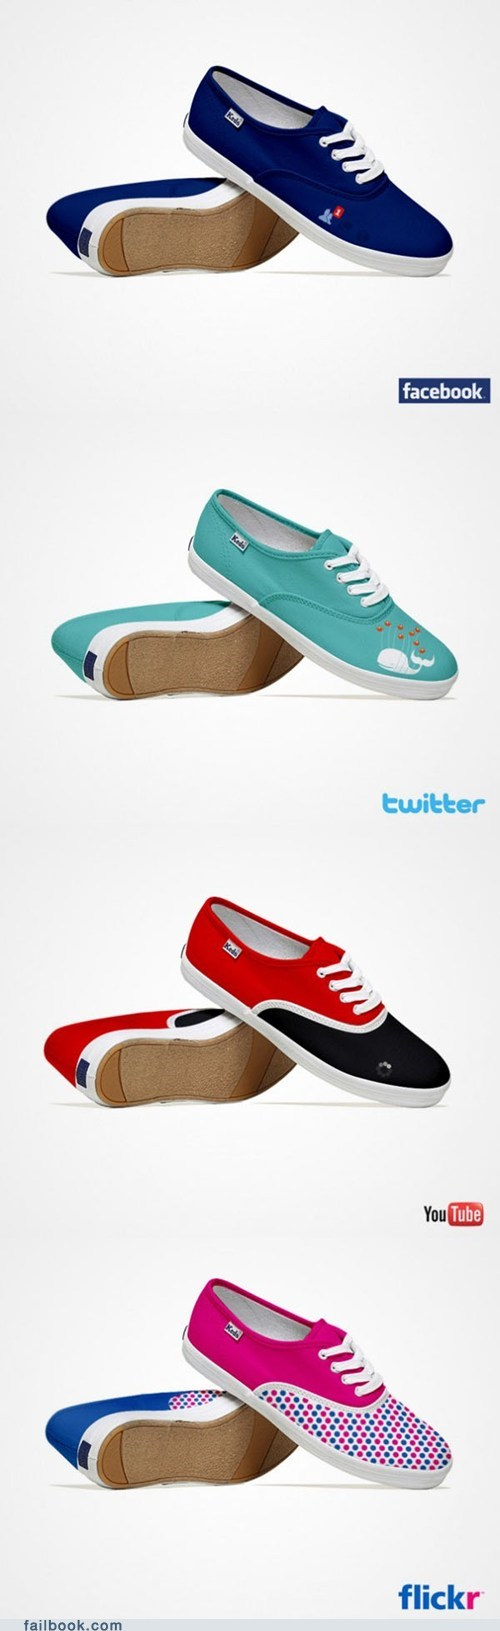 If Social Media Sites Were Keds